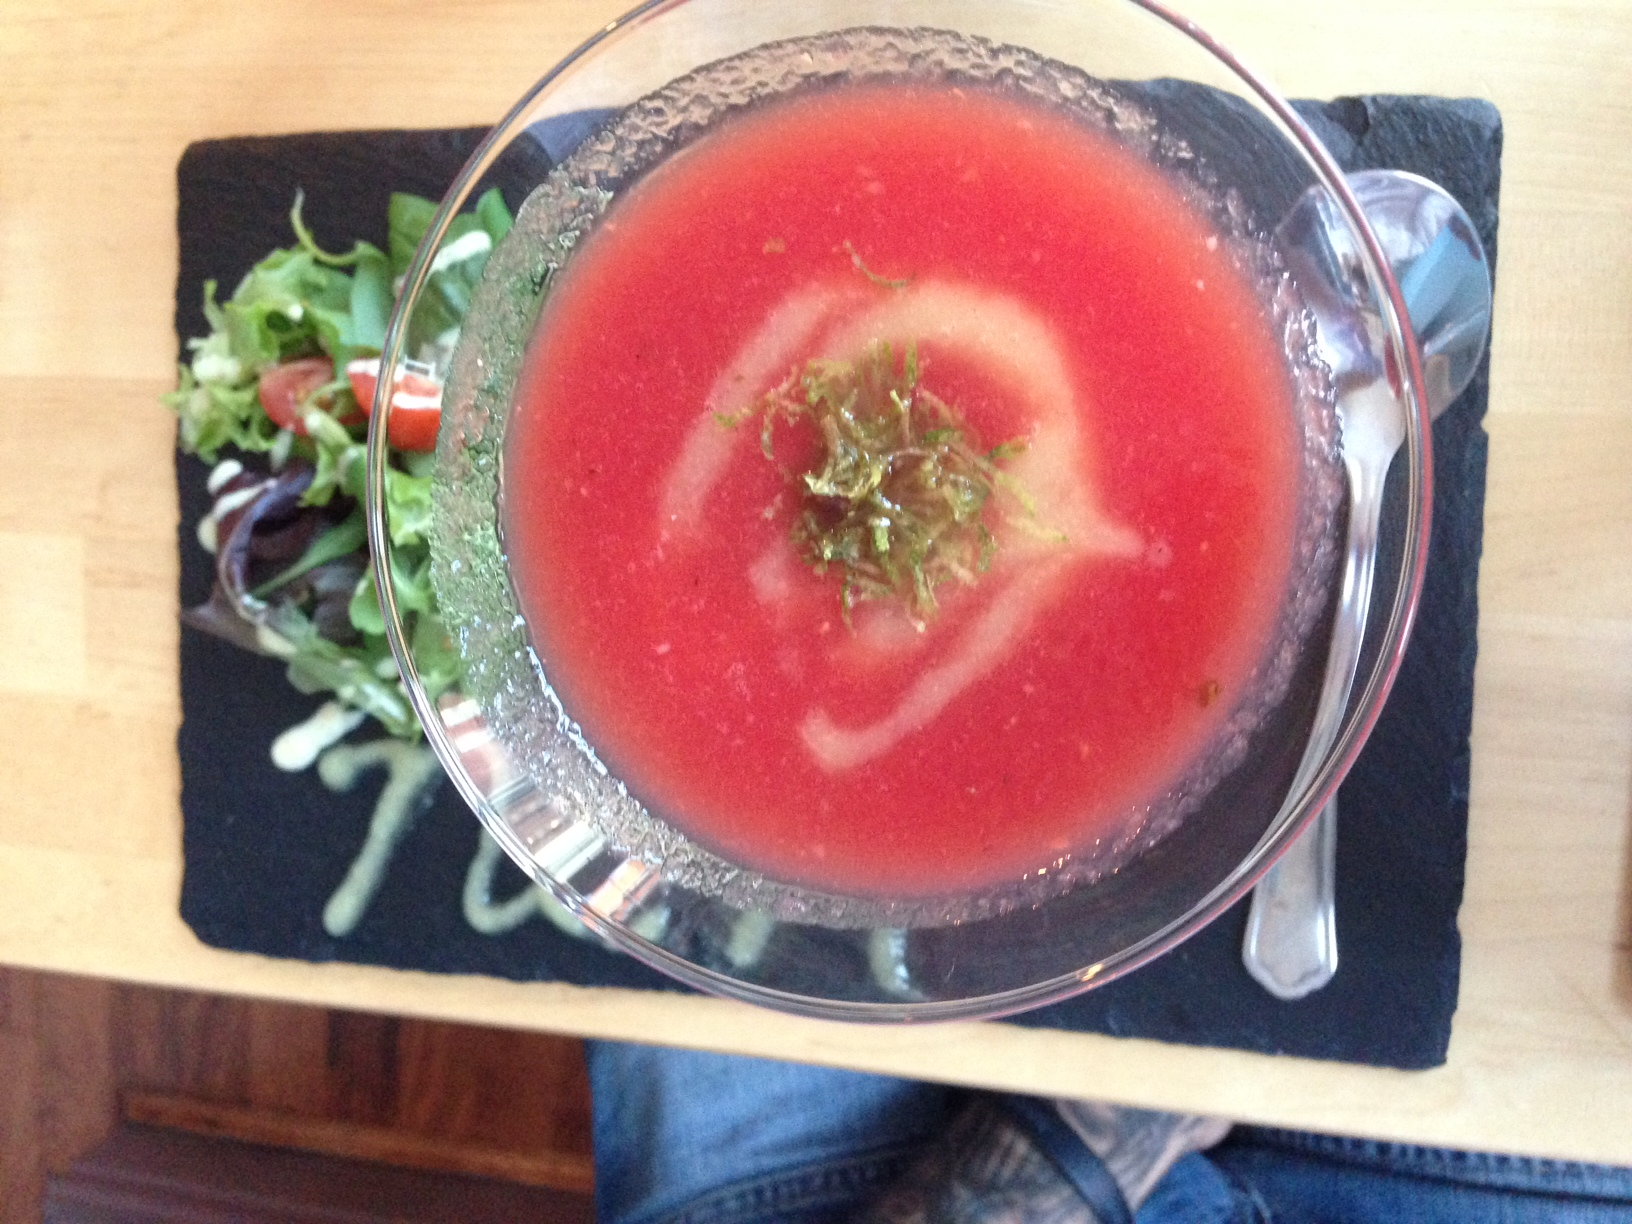 nom-restaurant-hanley-stoke-pimms-and-watermelon-soup